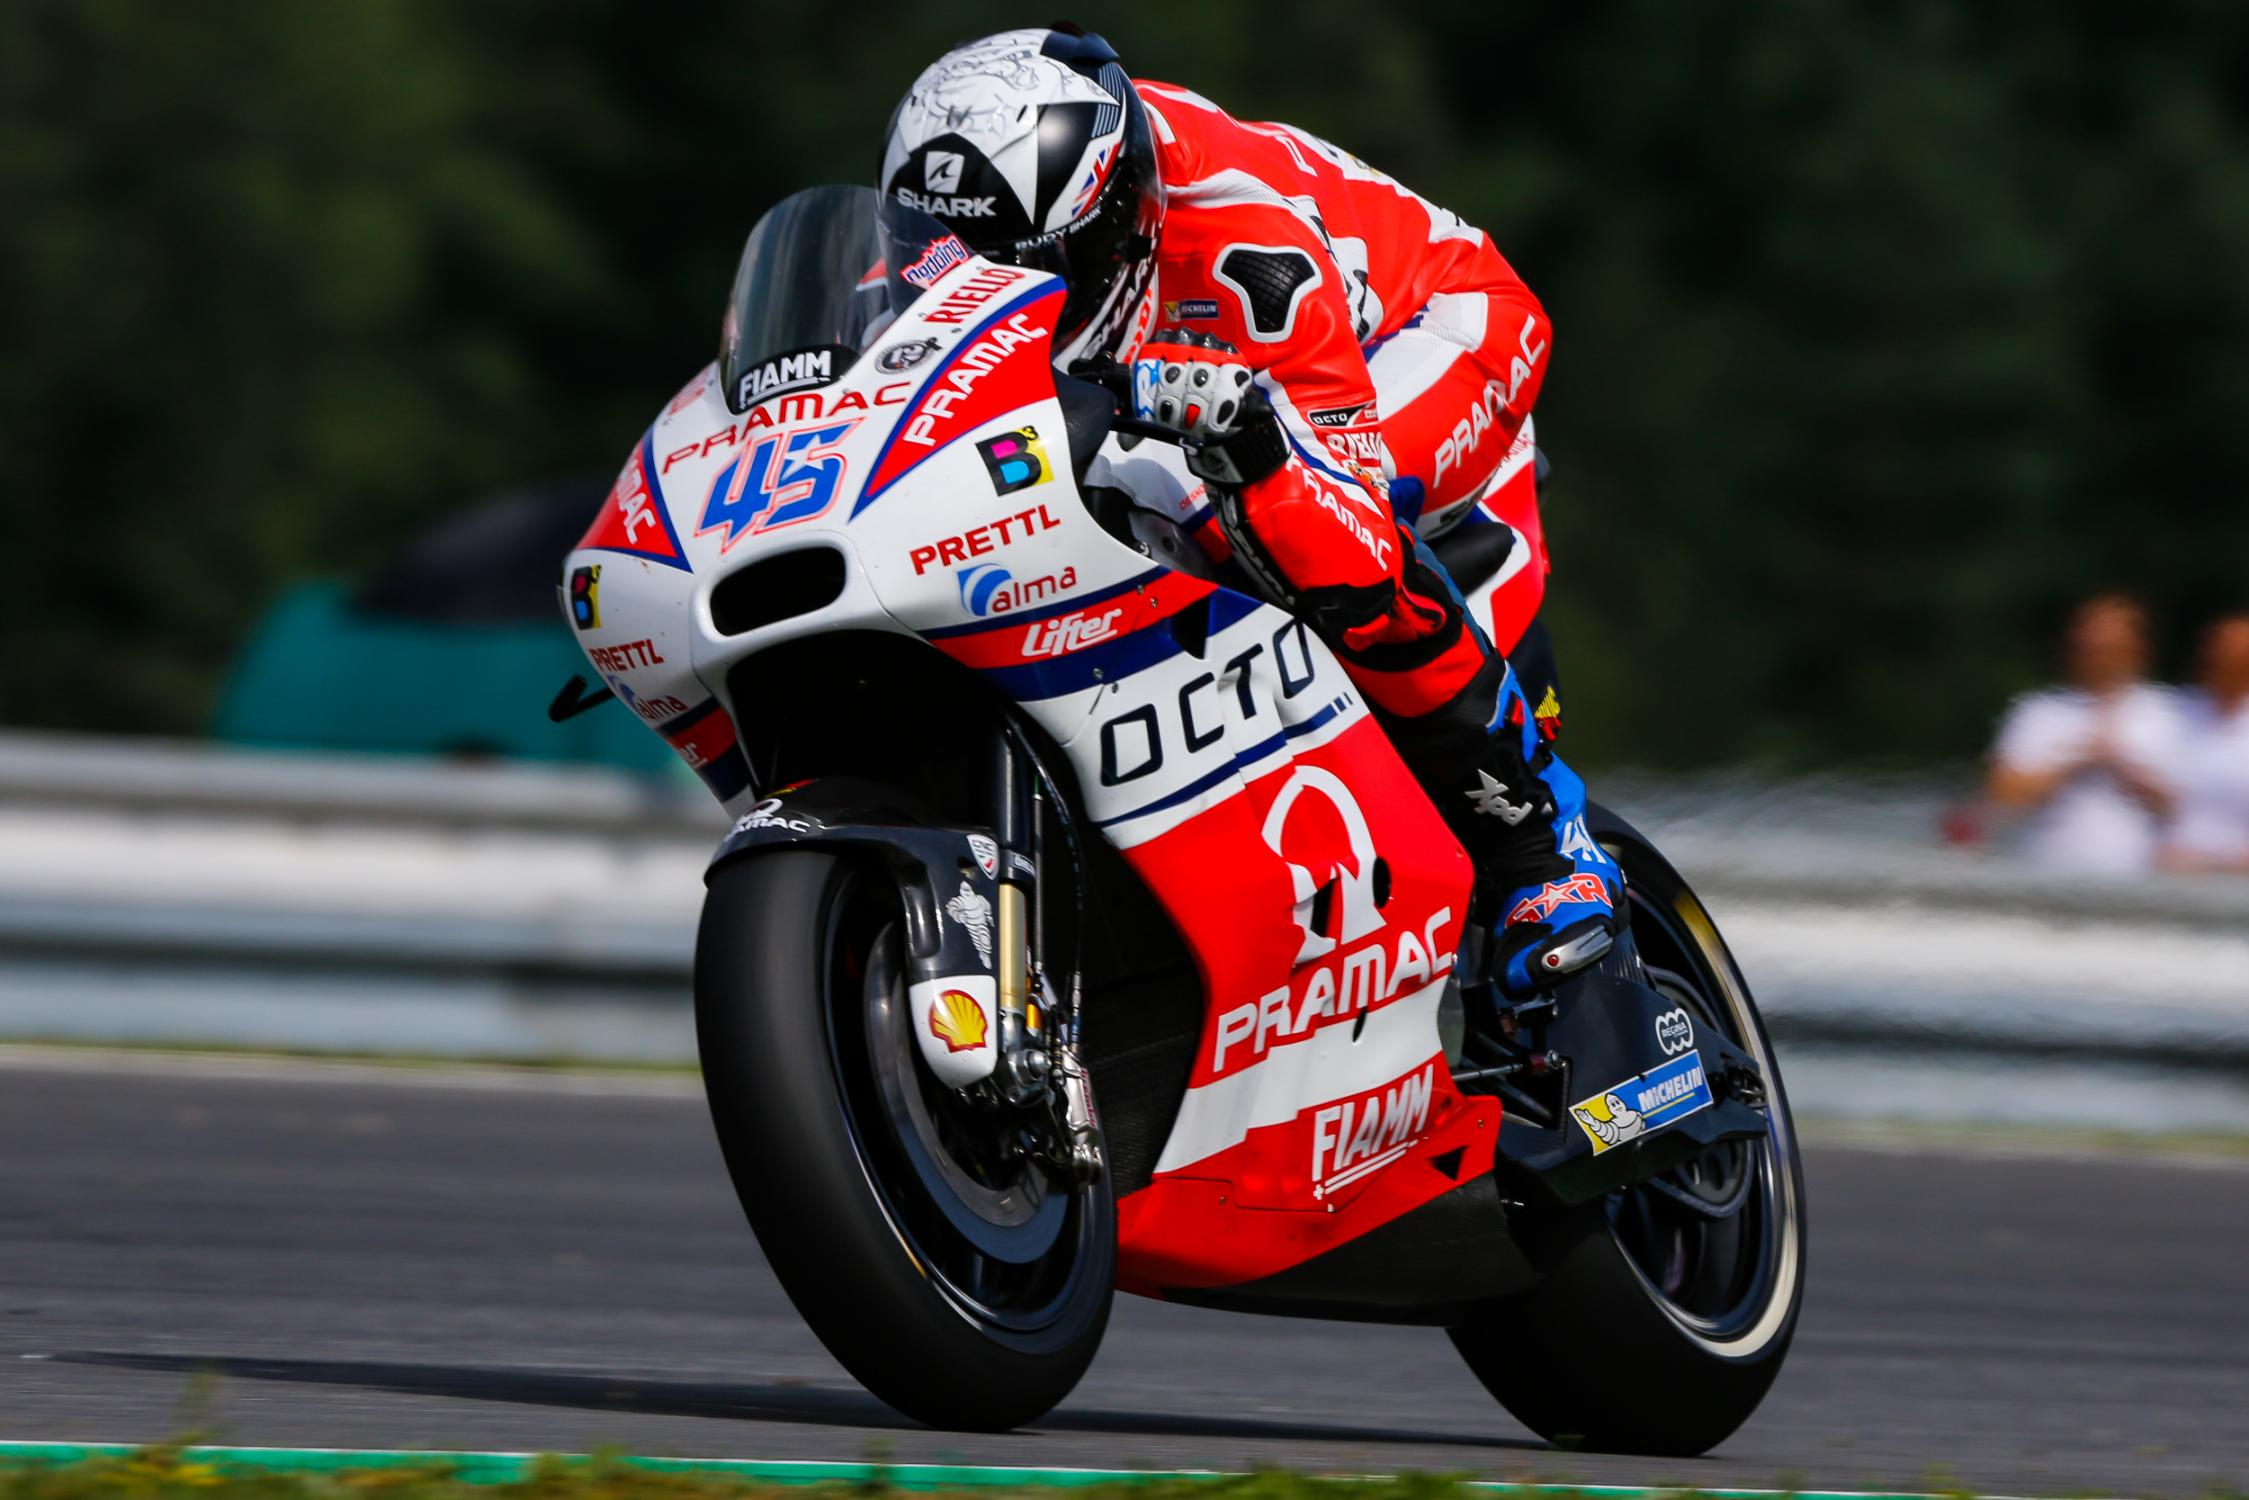 45-scott-redding-eng_gp_6311.gallery_full_top_fullscreen.jpg